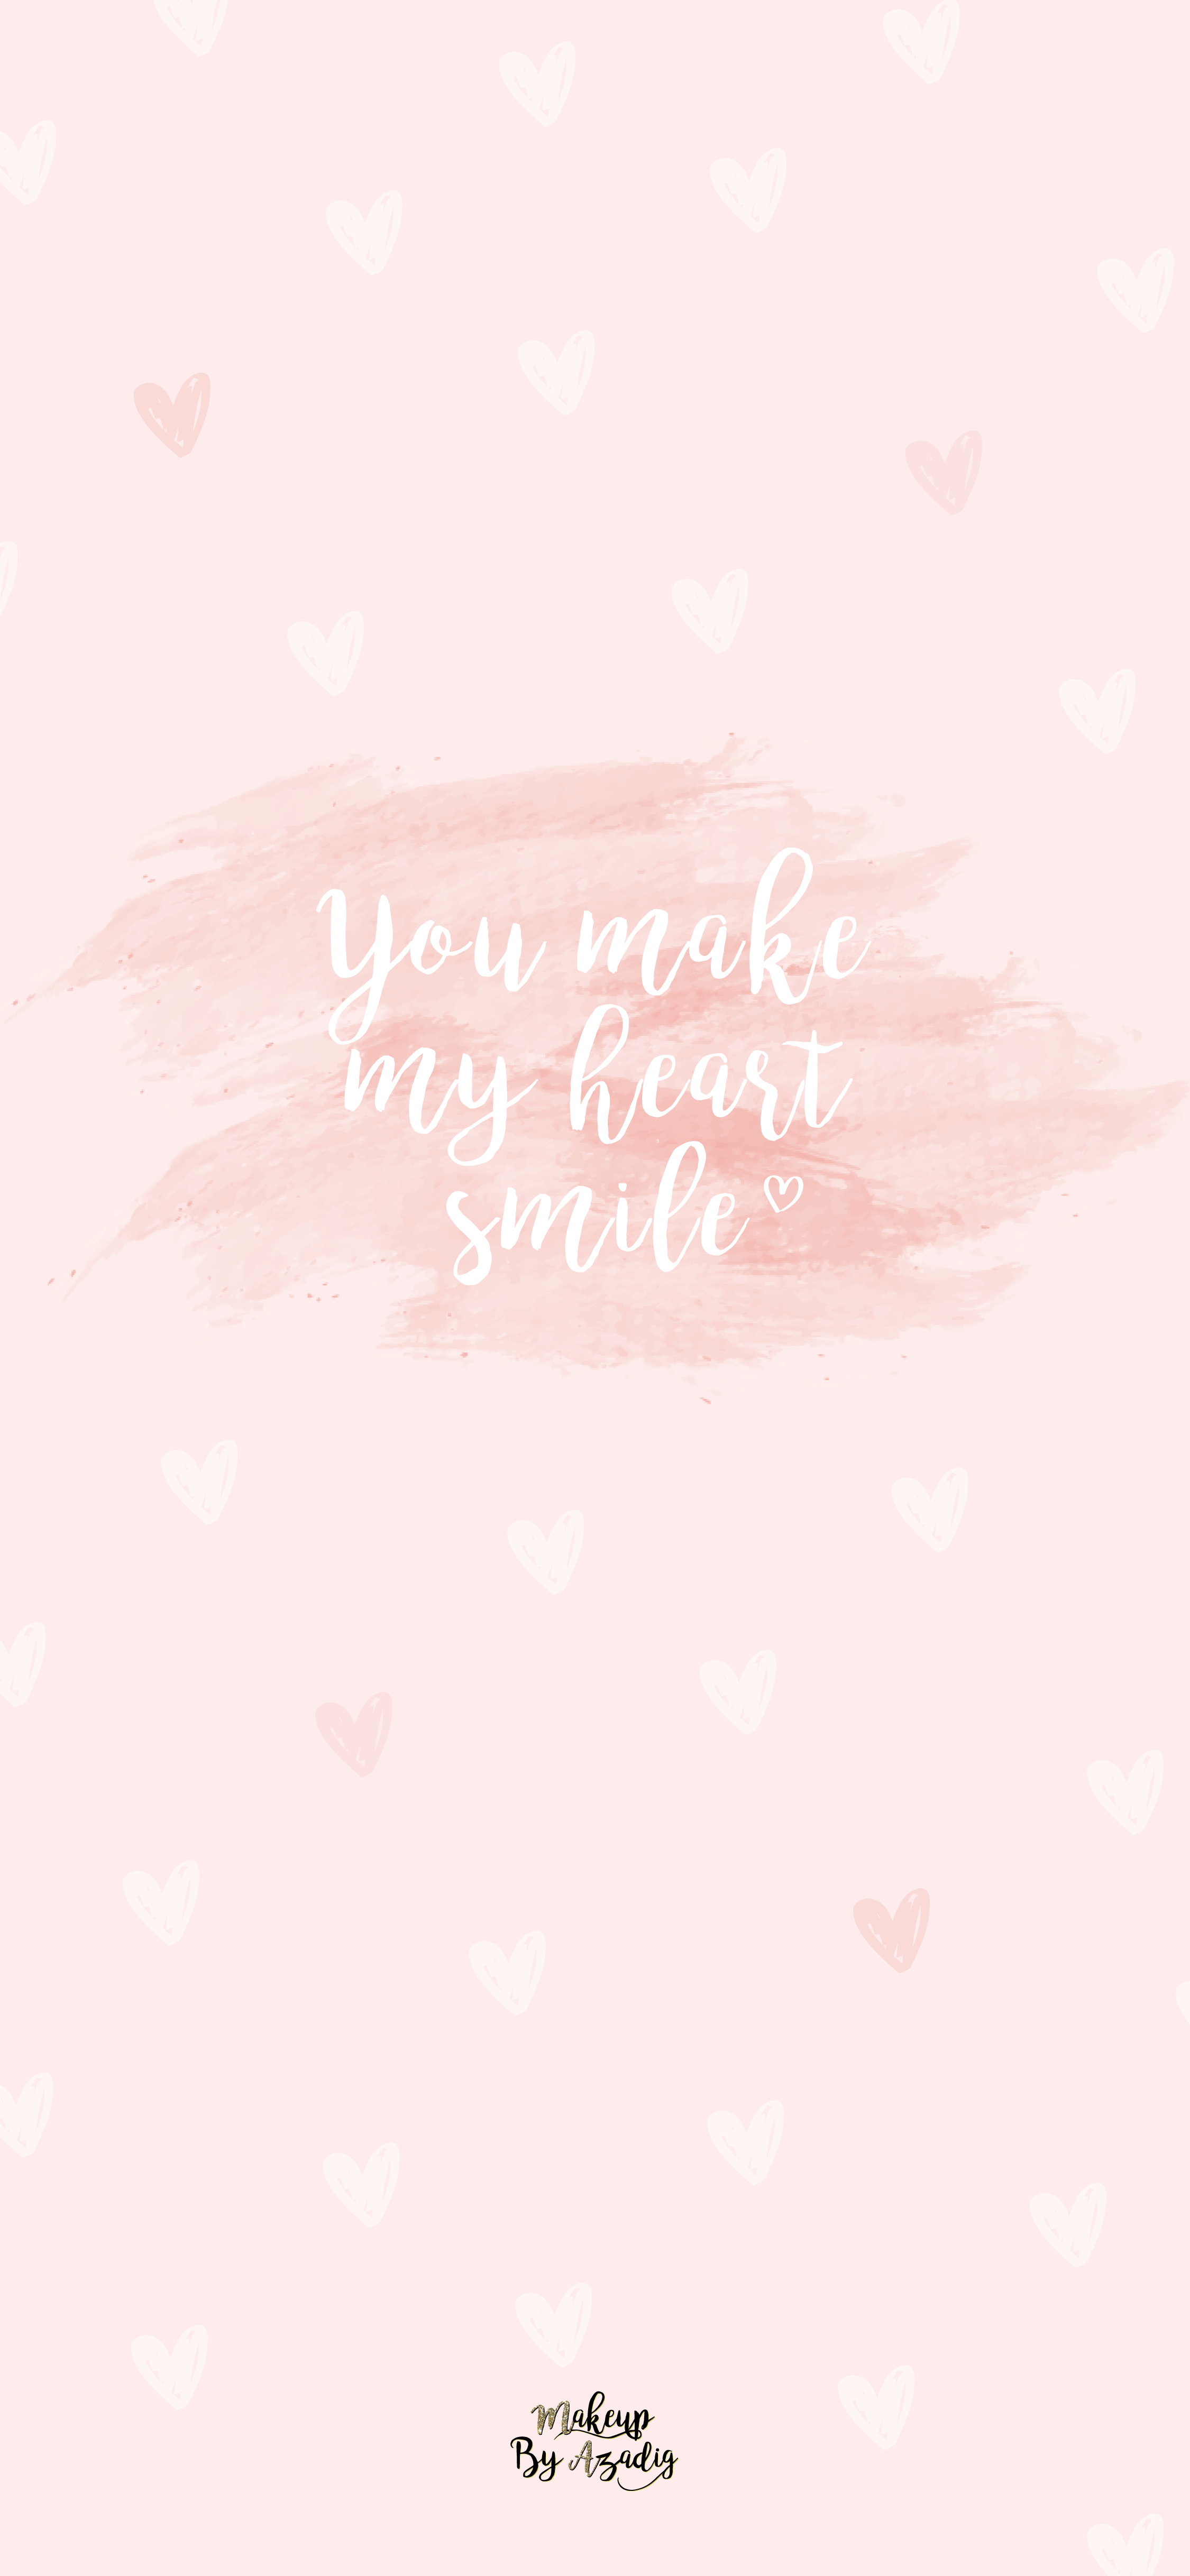 fond-decran-wallpaper-coeur-love-amour-citation-you-make-my-heart-smile-rose-girly-iphone-X-makeupbyazadig-tendance